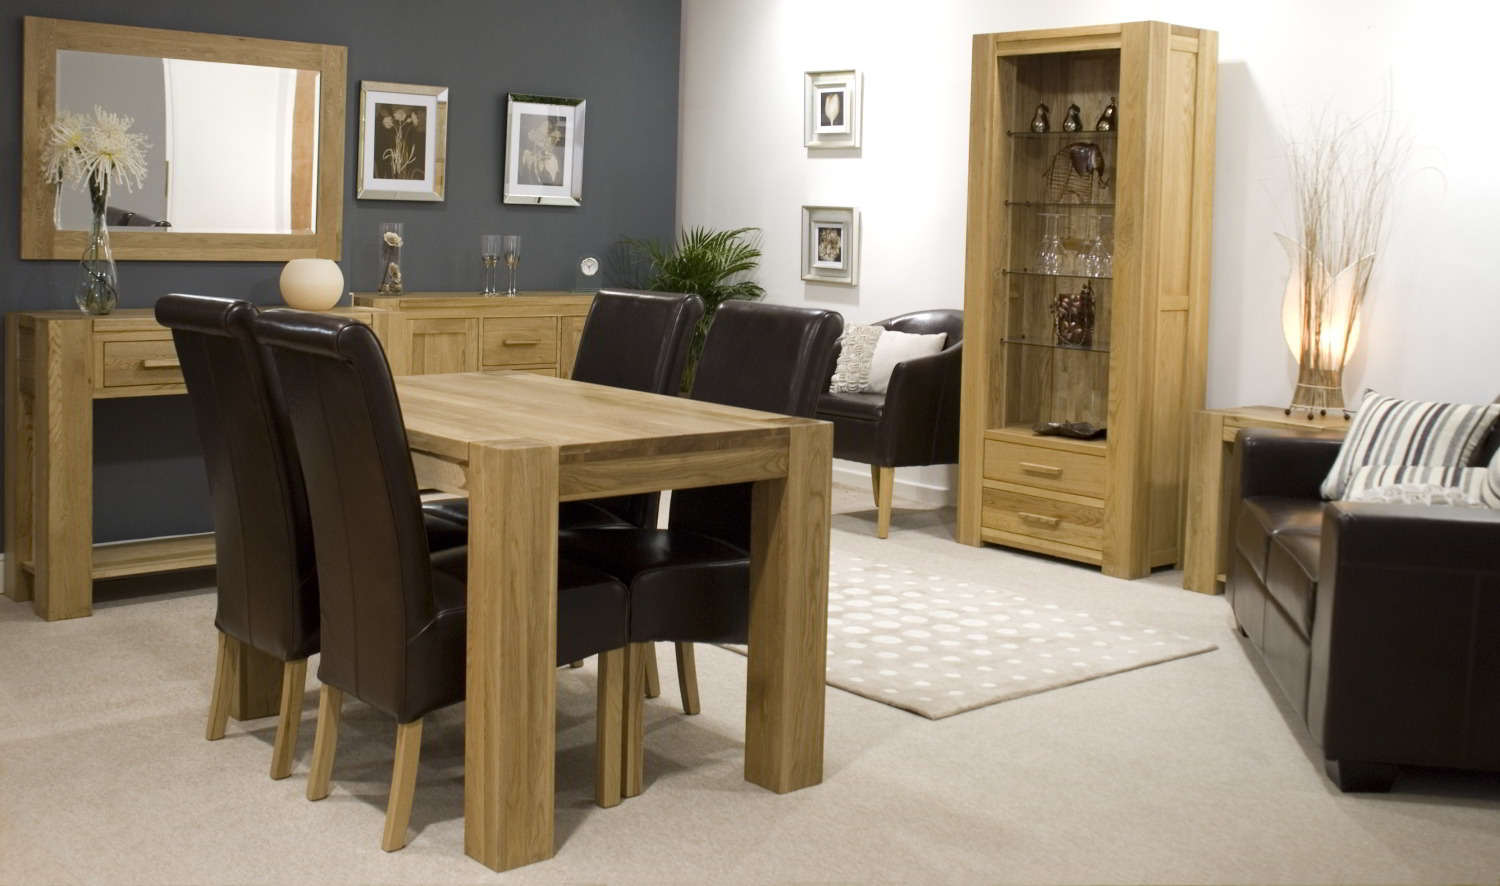 Pemberton solid oak furniture small living room office for Solid oak furniture